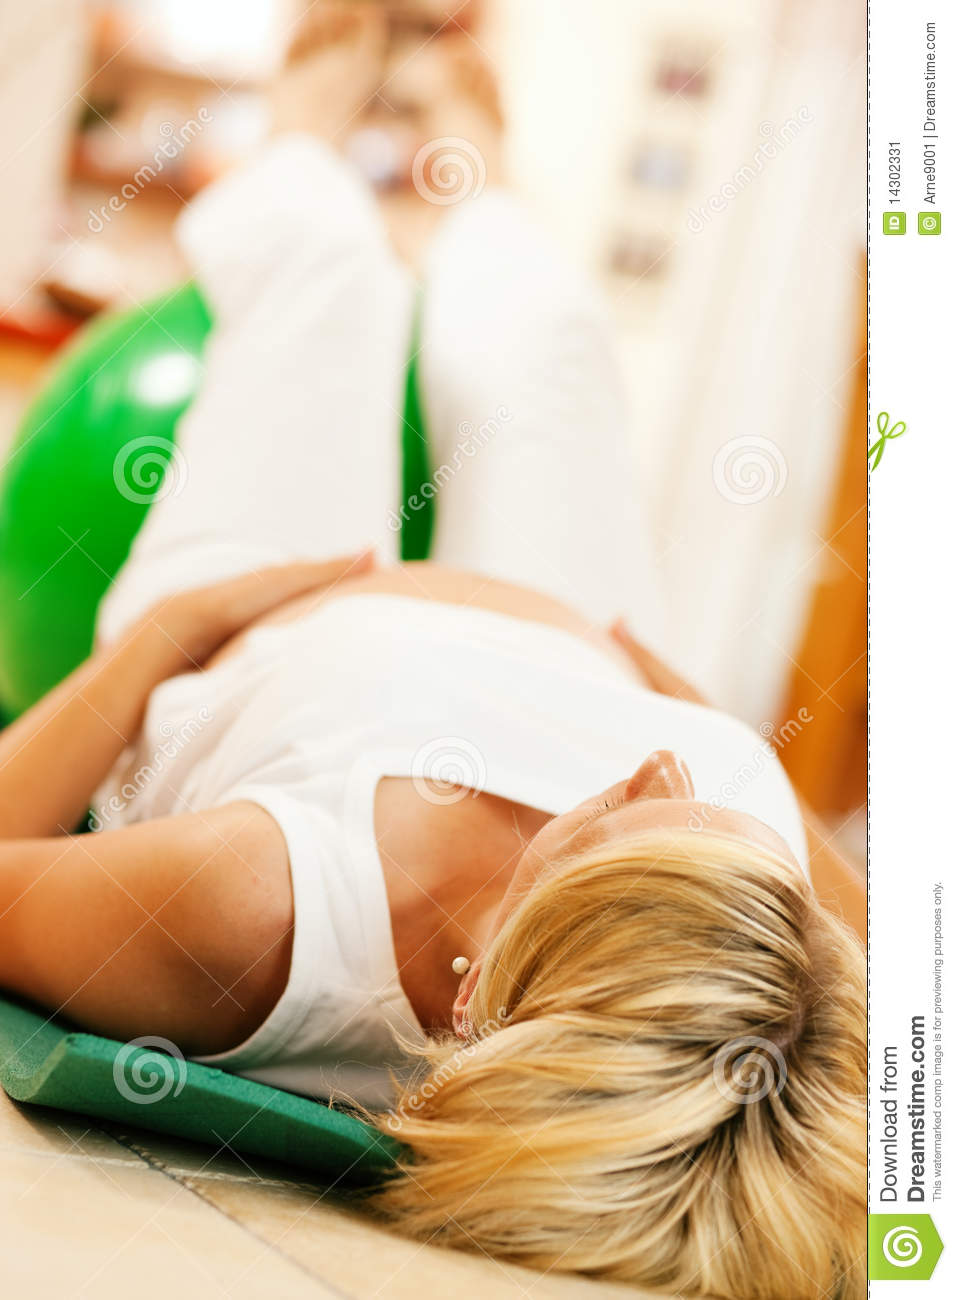 Pregnant Woman Doing Pregnancy Gymnastics Stock Image ...